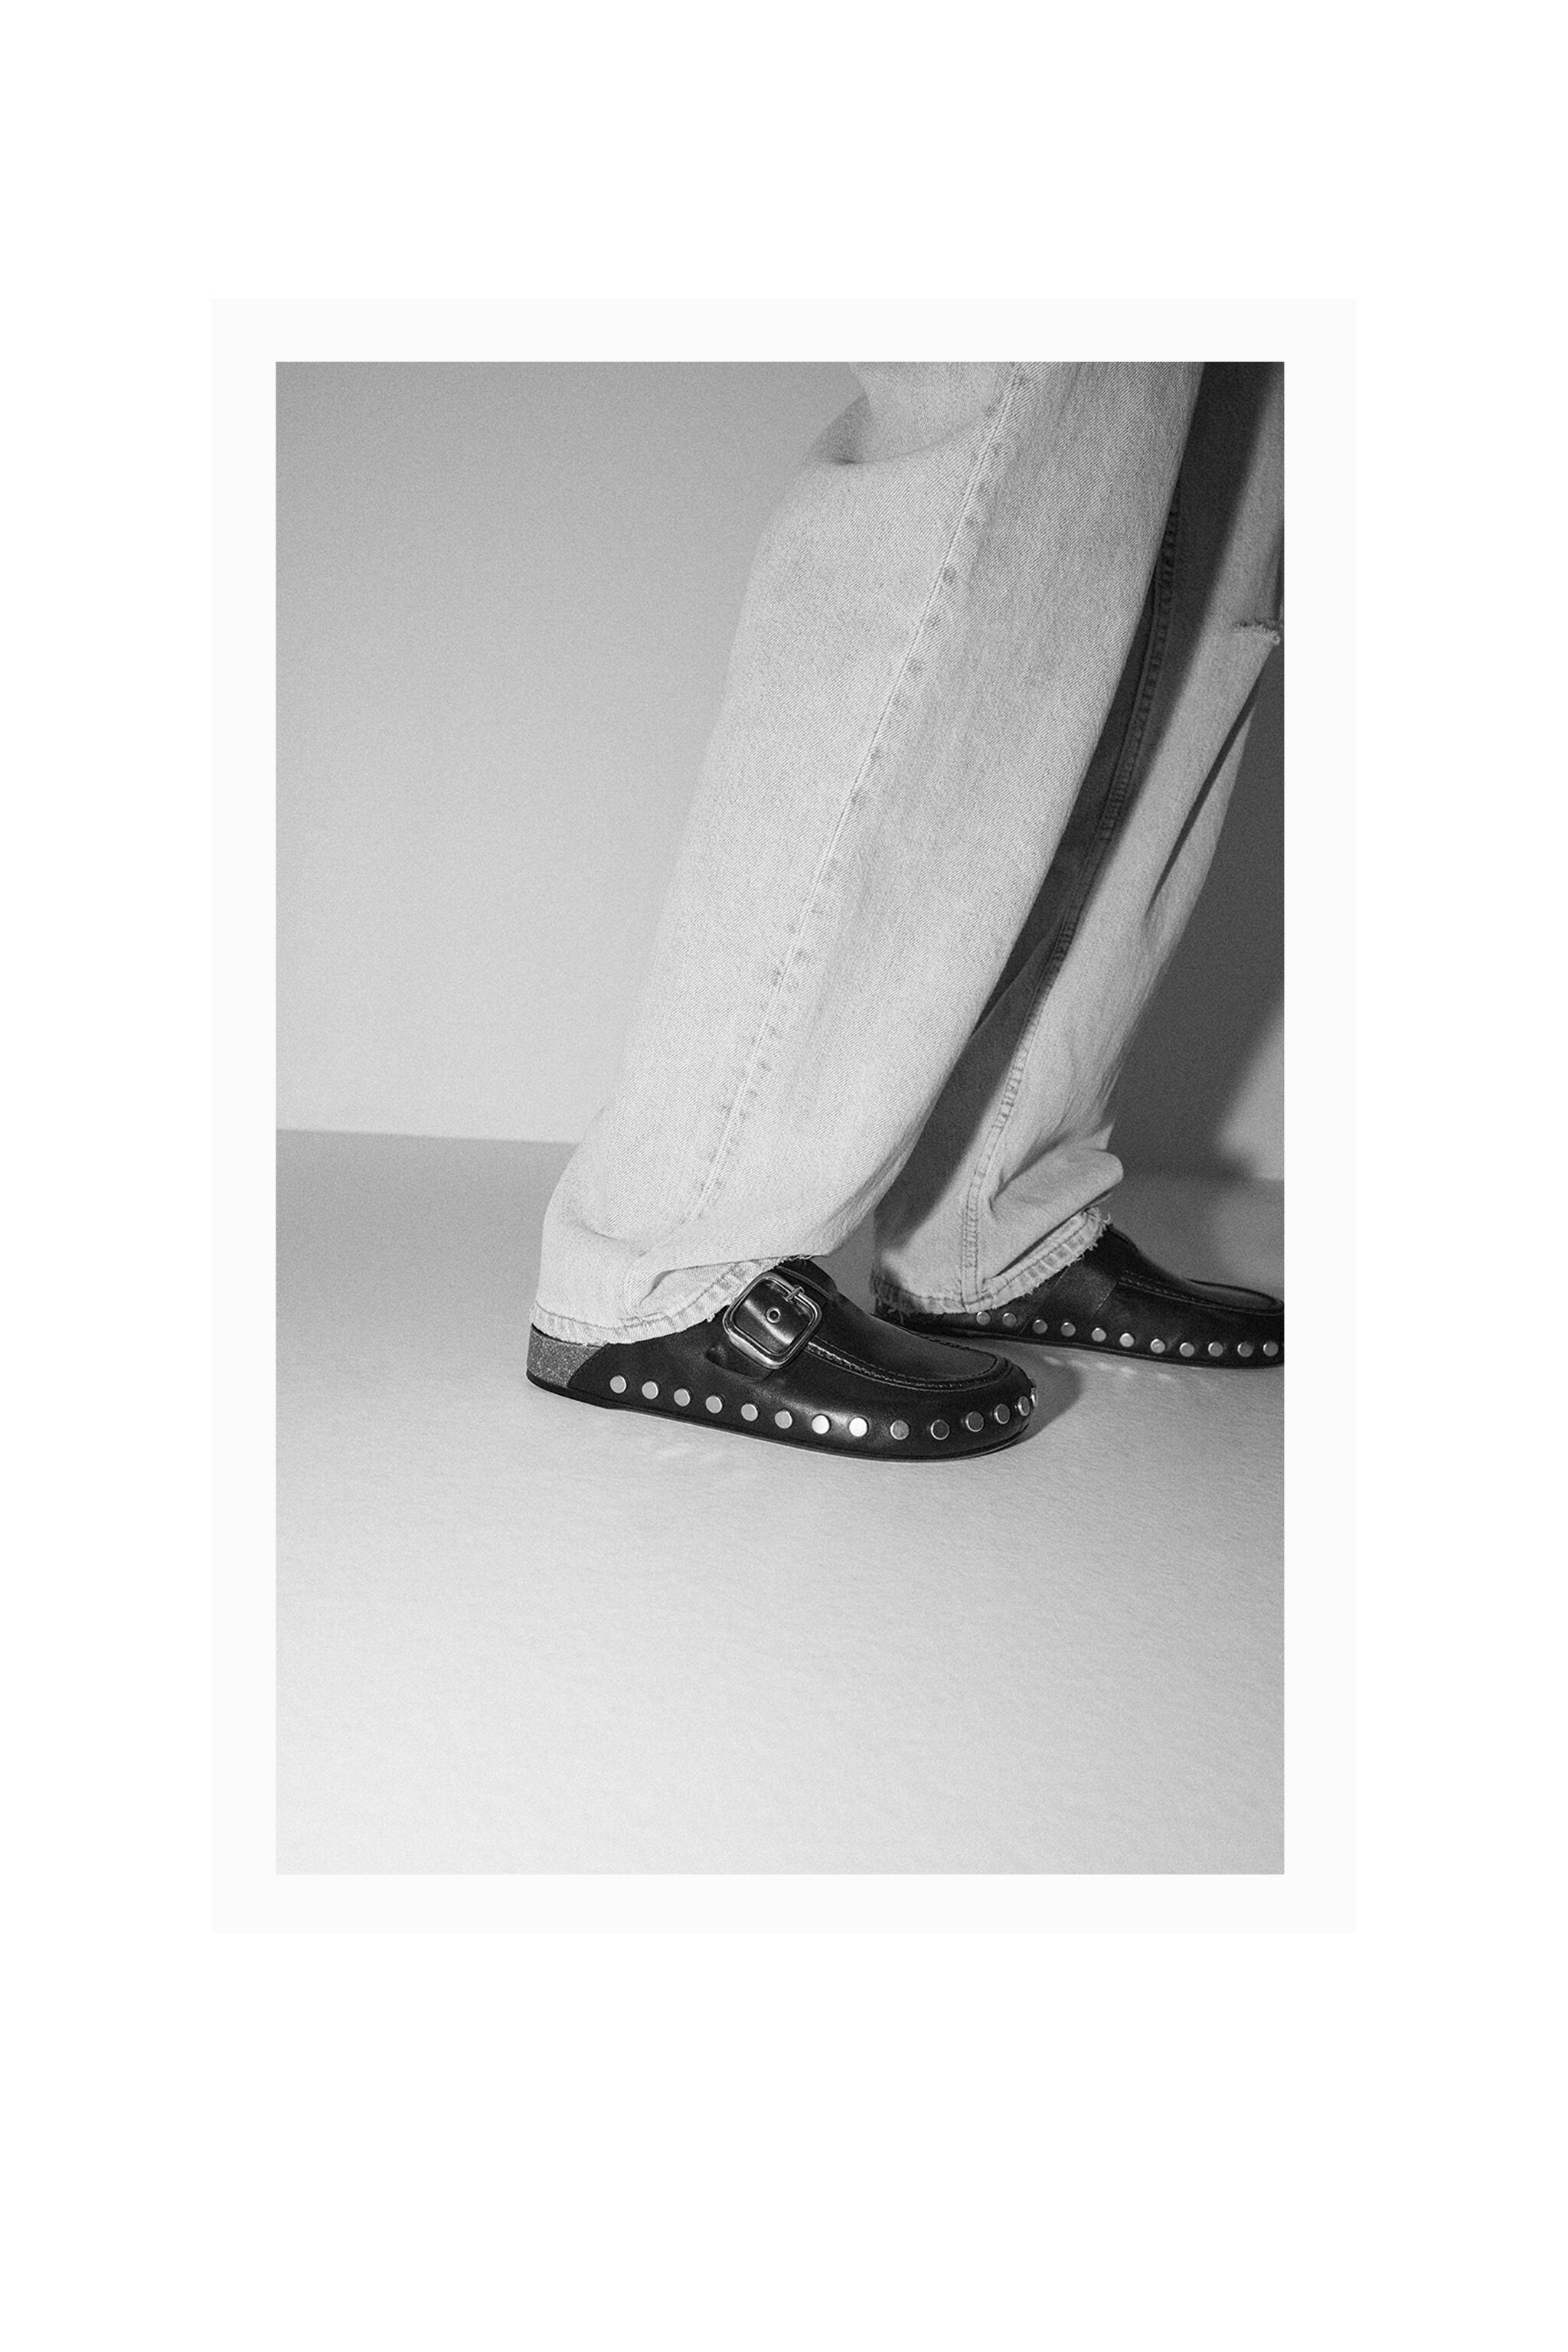 LOW HEEL LEATHER CLOGS WITH STUDS 7